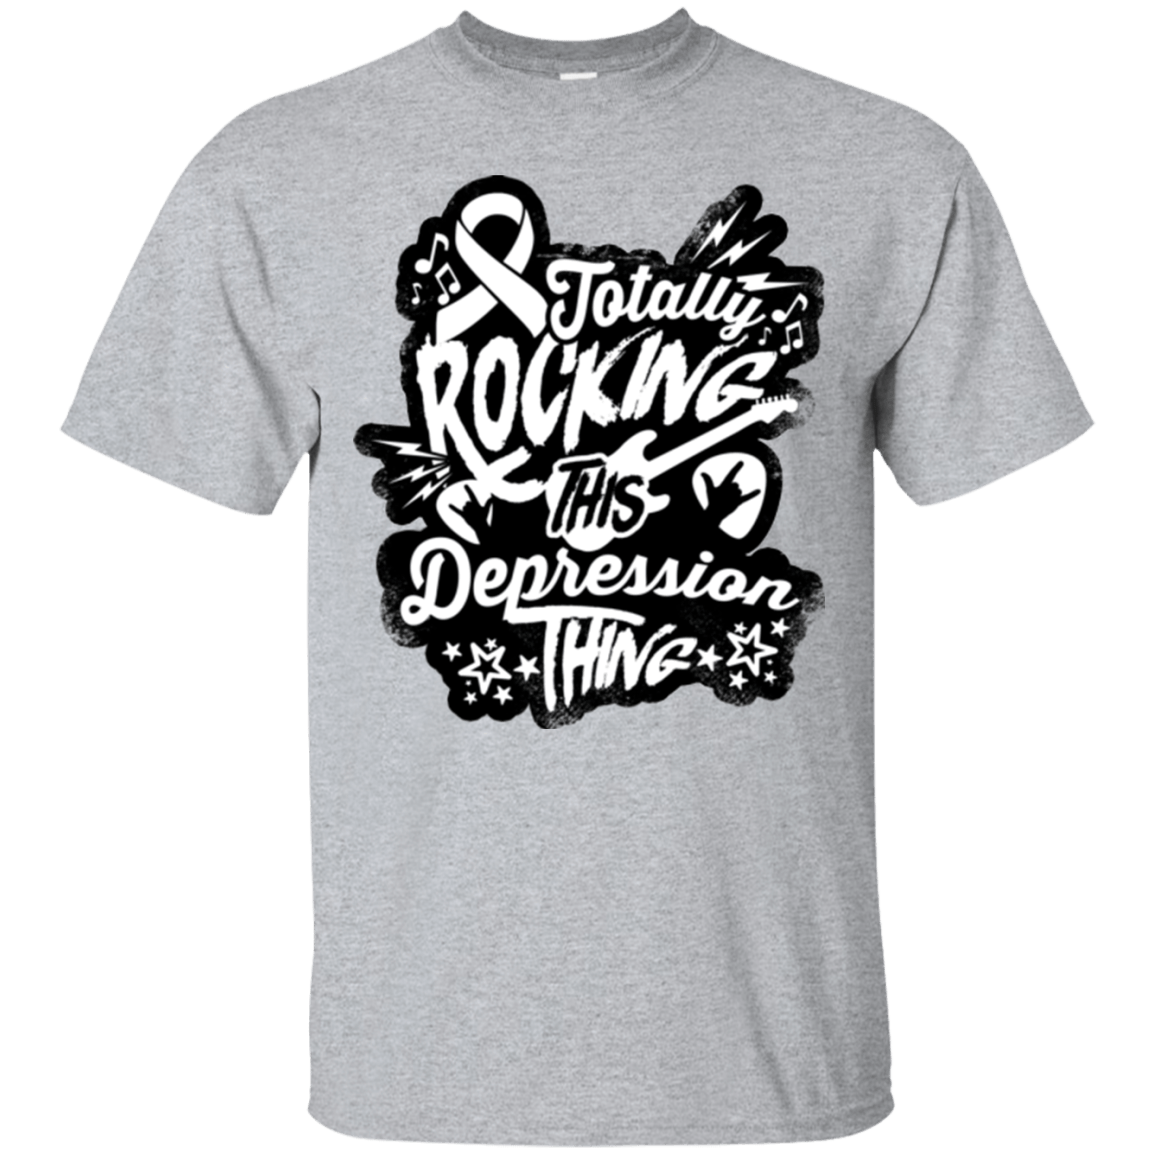 T-Shirts - Rocking Depression Unisex Shirt